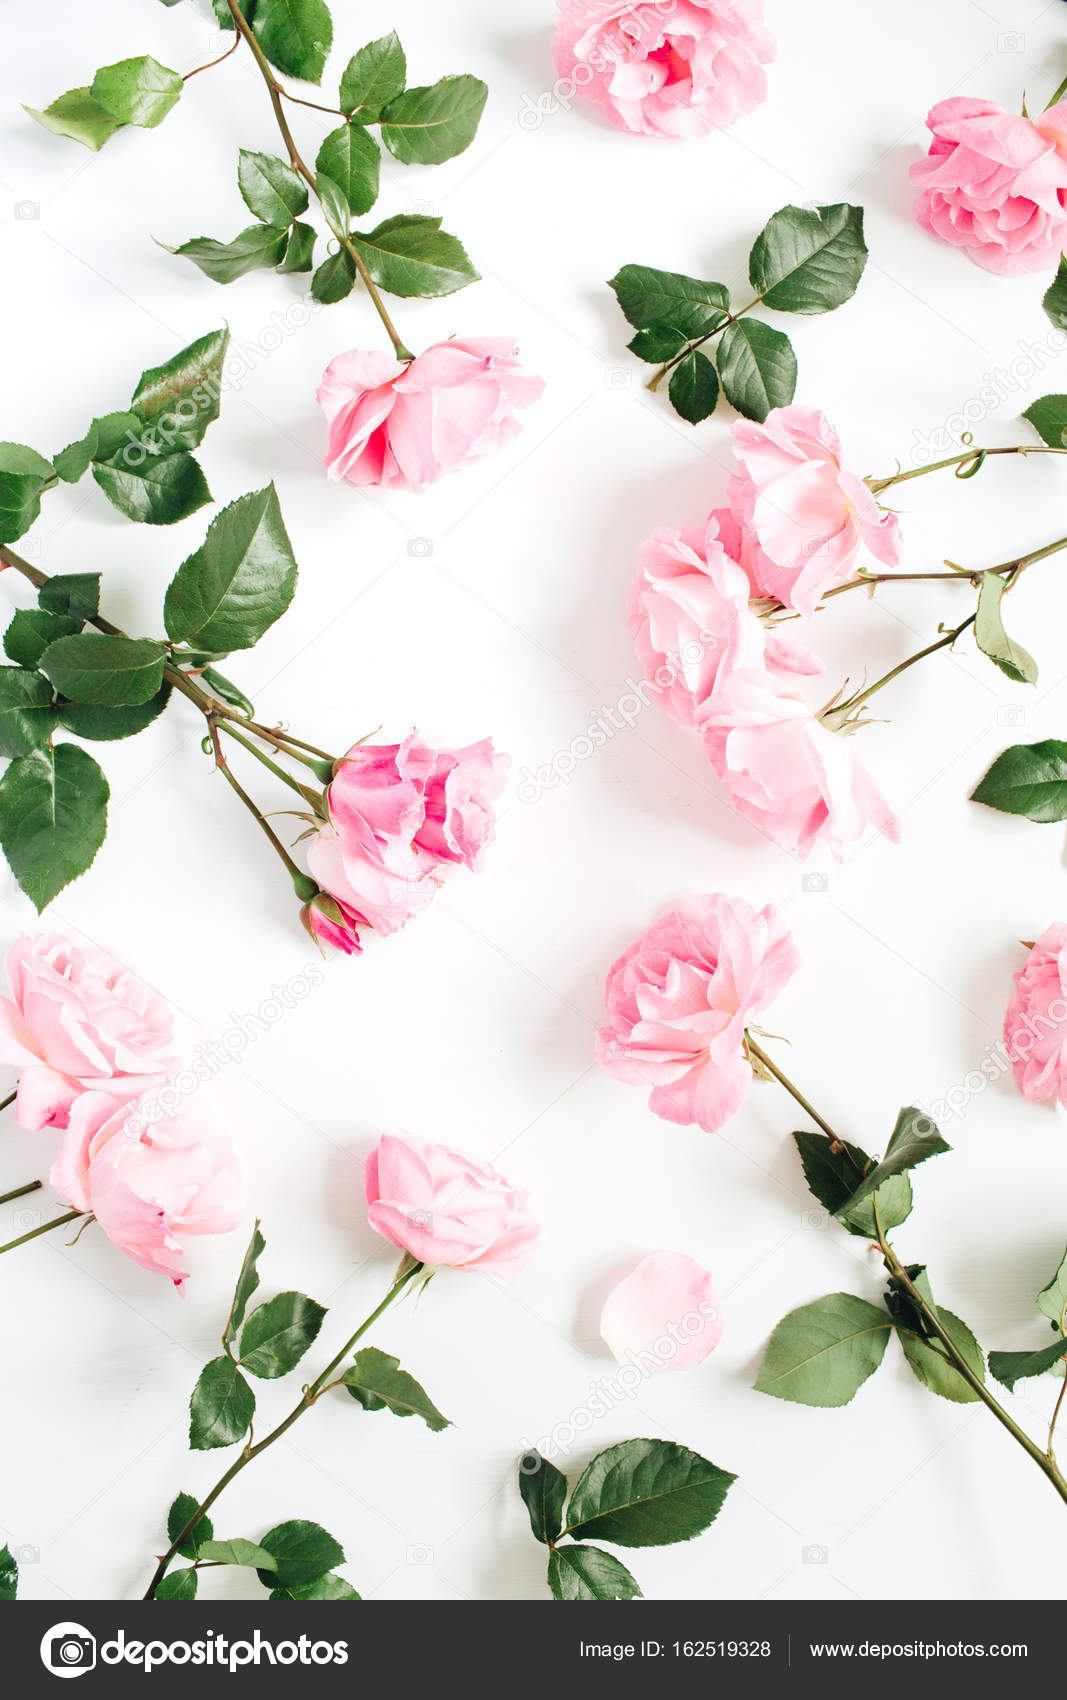 Floral Pattern Made Of Pink Roses Green Leaves Stock Photo